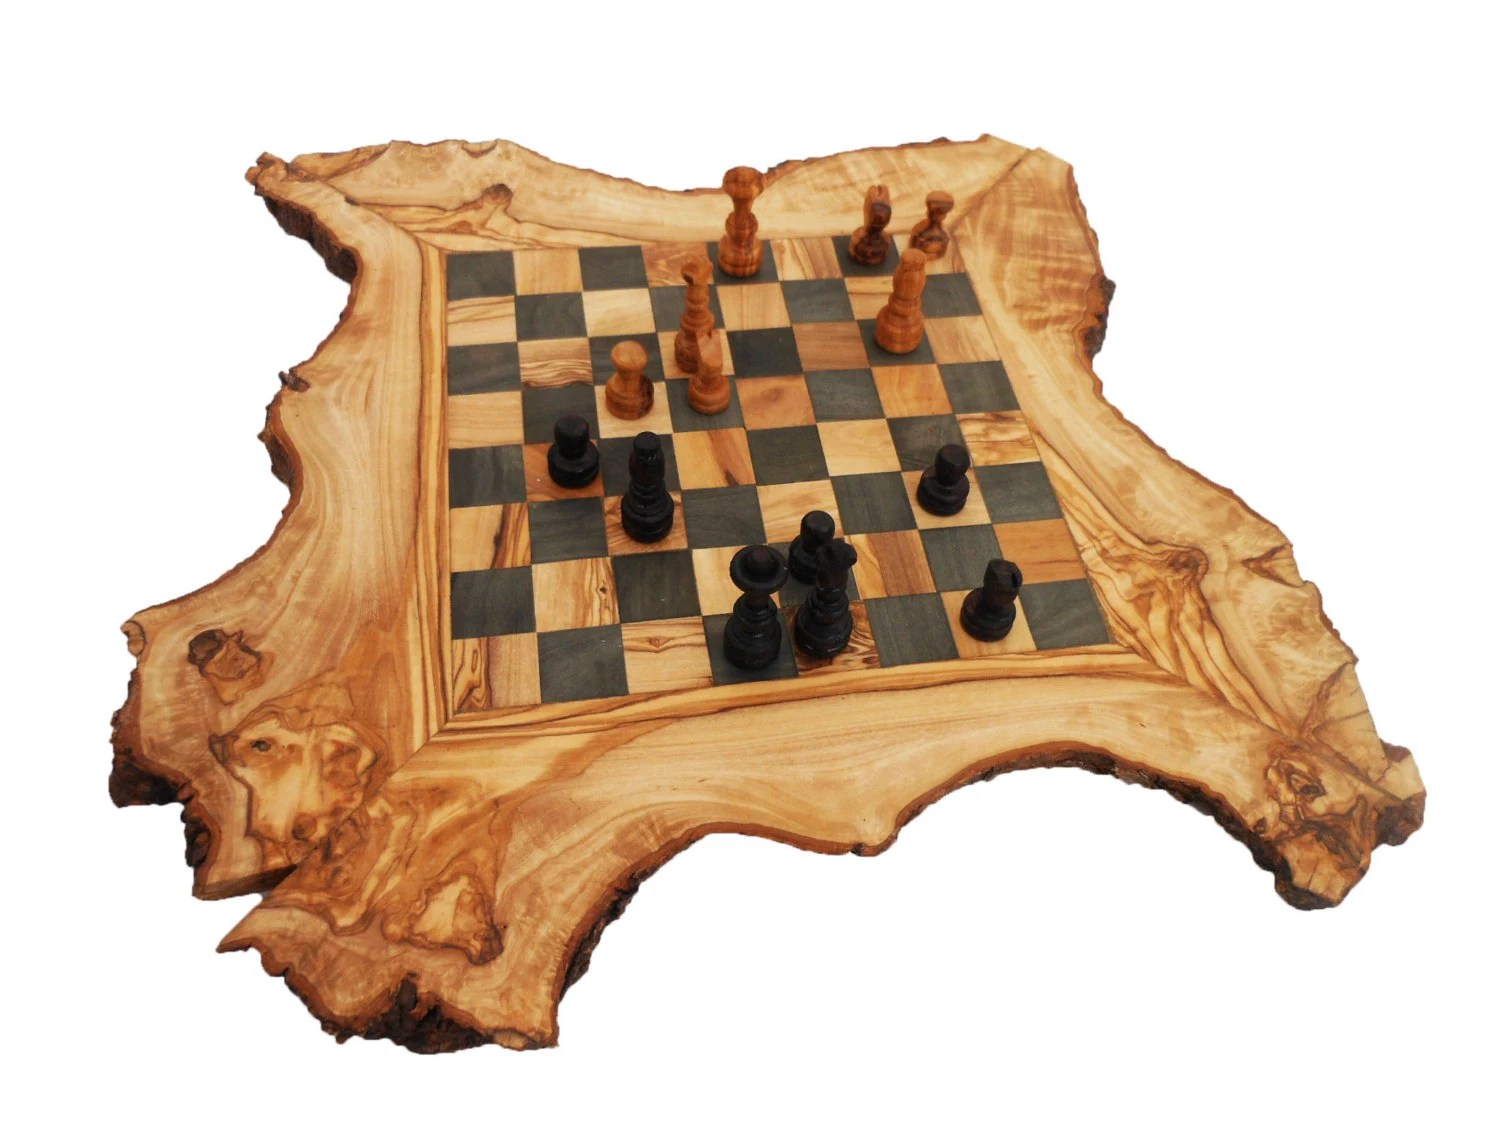 Personalized Chess Set Gift Olive Wood Chess Board Set Personalized Wood Natural Edges